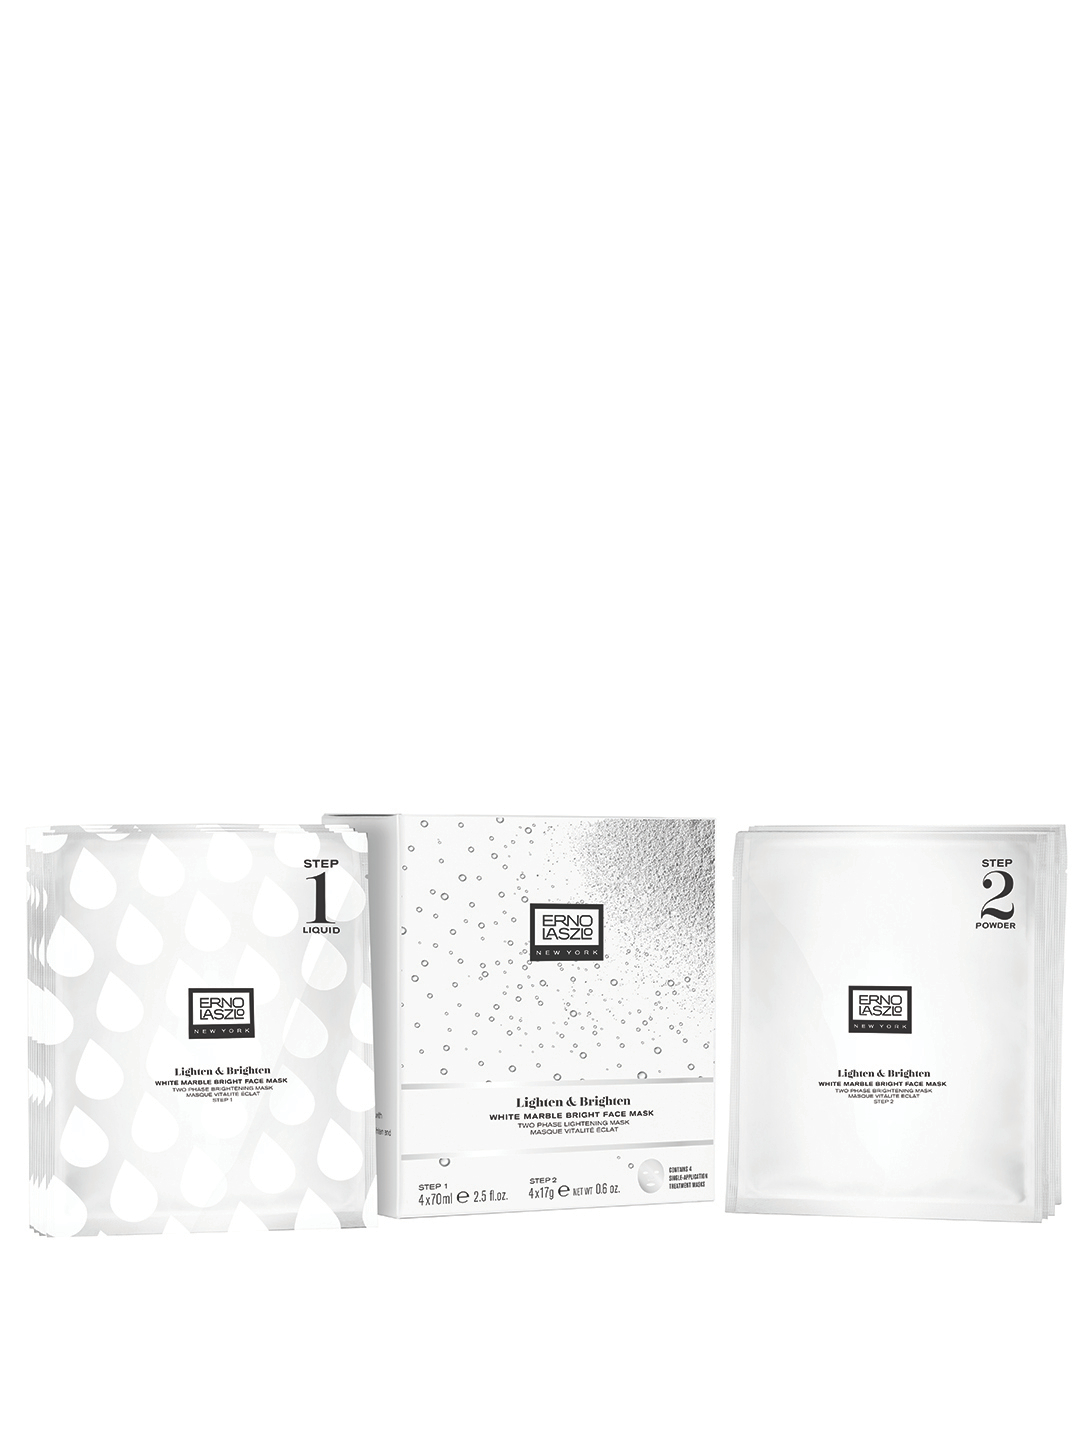 ERNO LASZLO White Marble Bright Face Mask Beauty